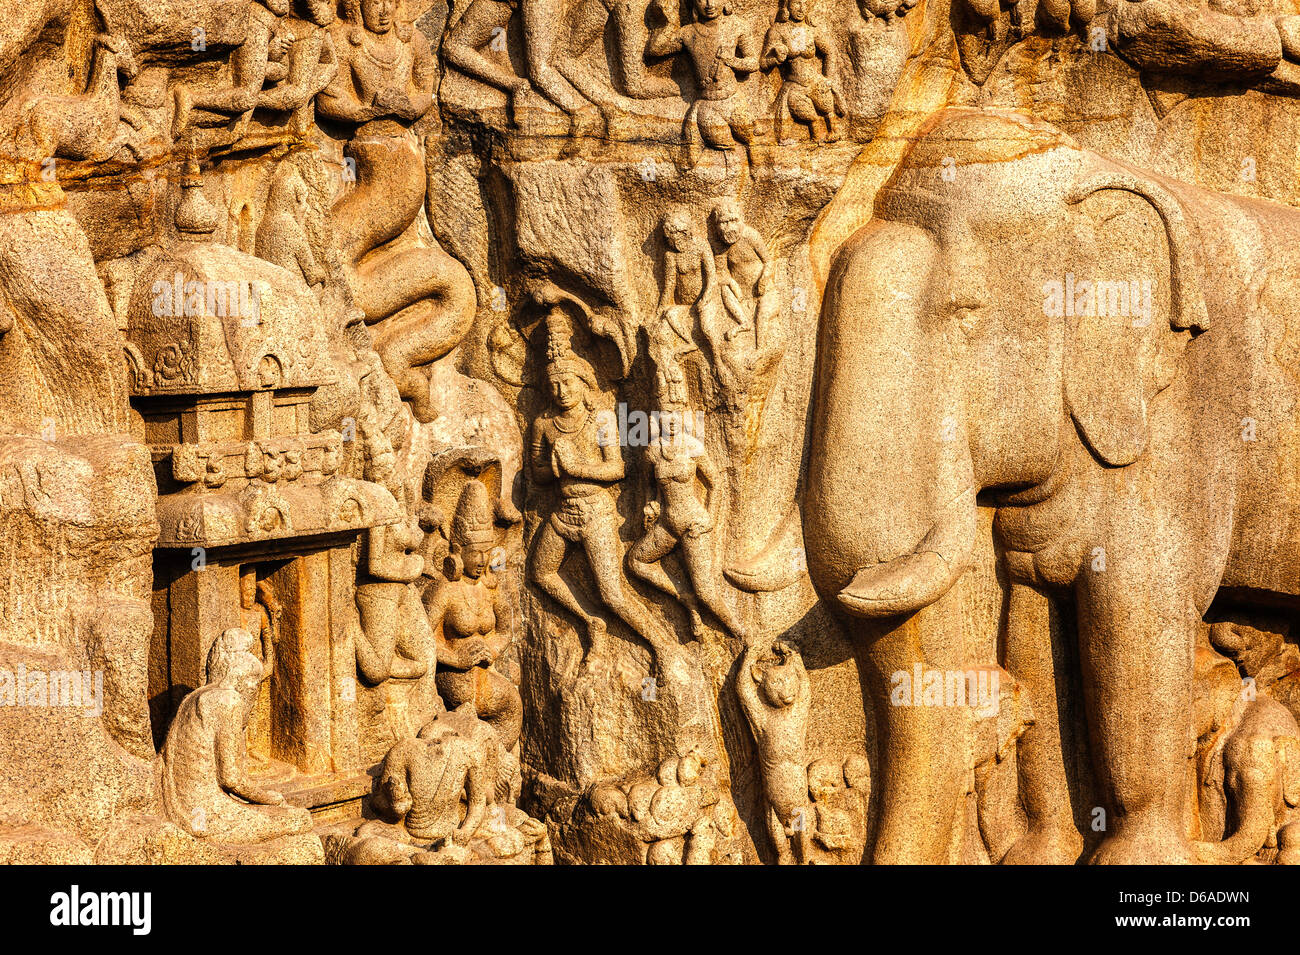 Mythological Hindu figures, animals, and other religious monolithic carvings dating back to 7th century at Mamallapuram, - Stock Image